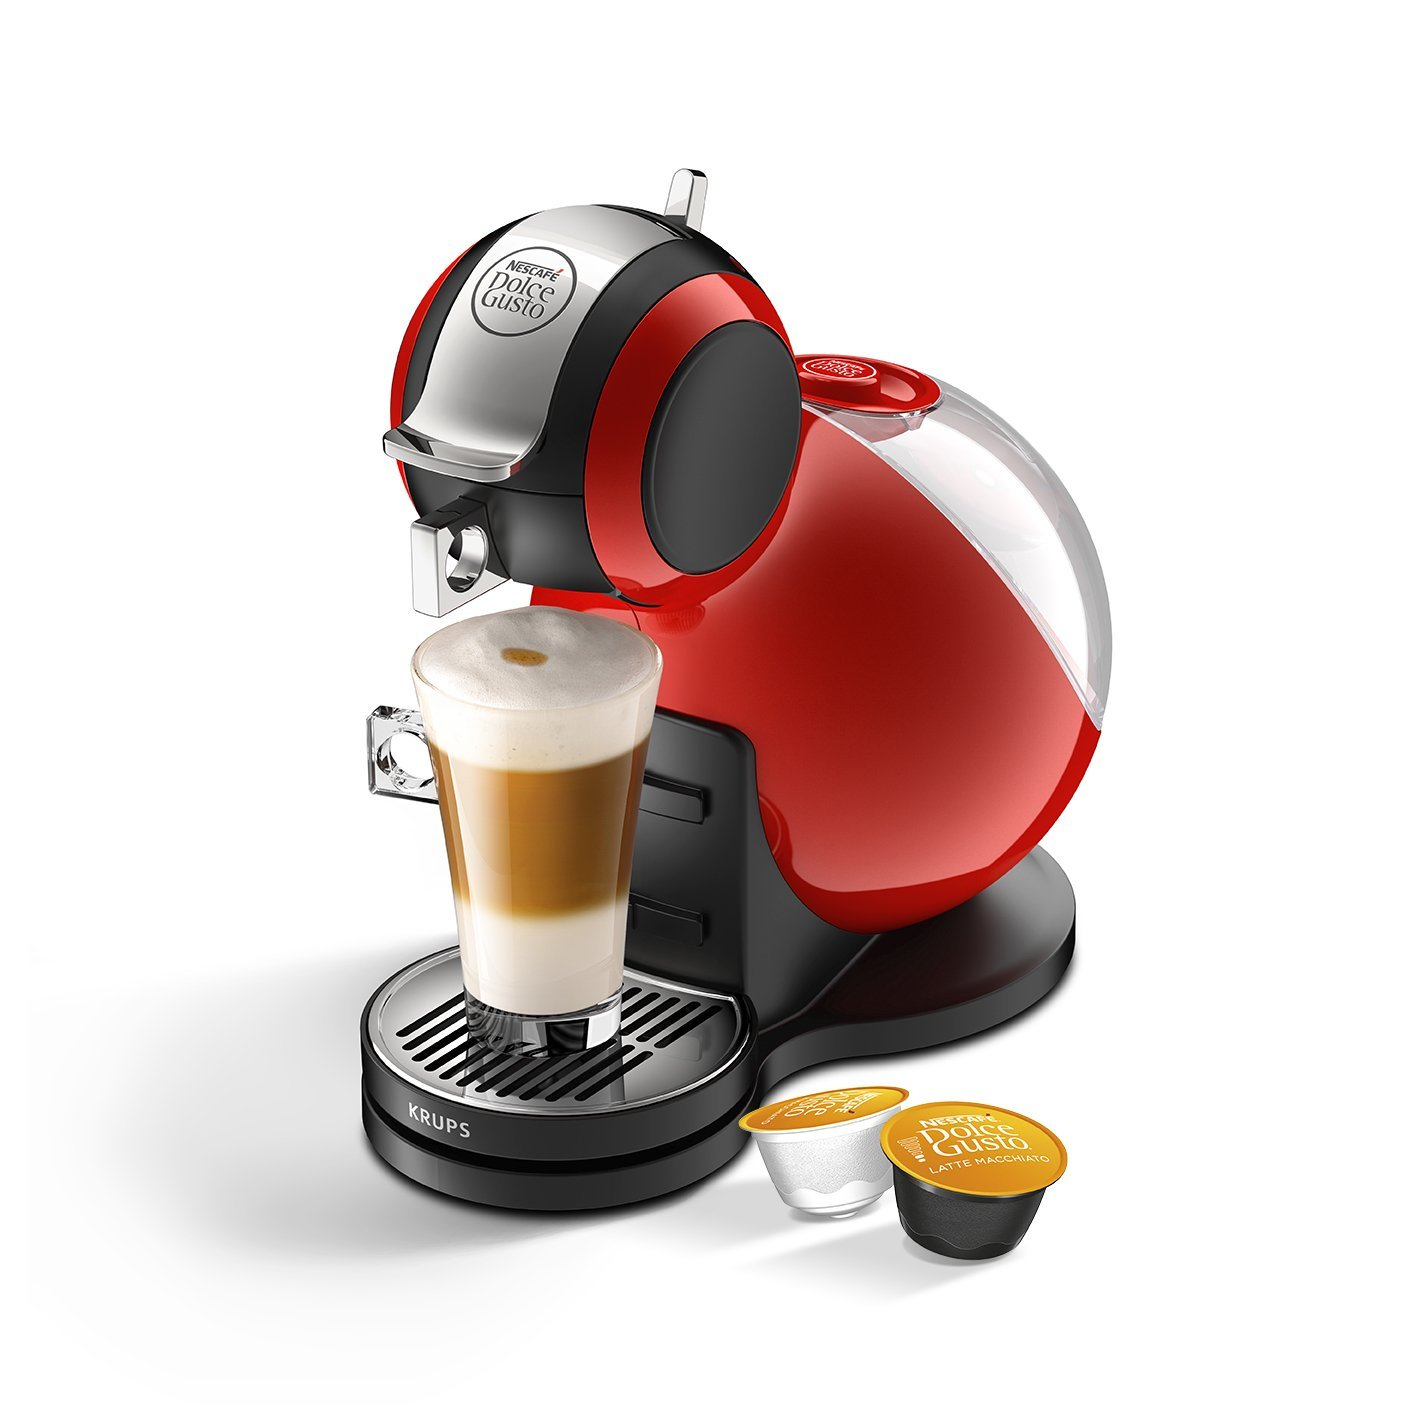 nescafe dolce gusto melody 3 manual coffee latte machine red by krups kp220540 ebay. Black Bedroom Furniture Sets. Home Design Ideas